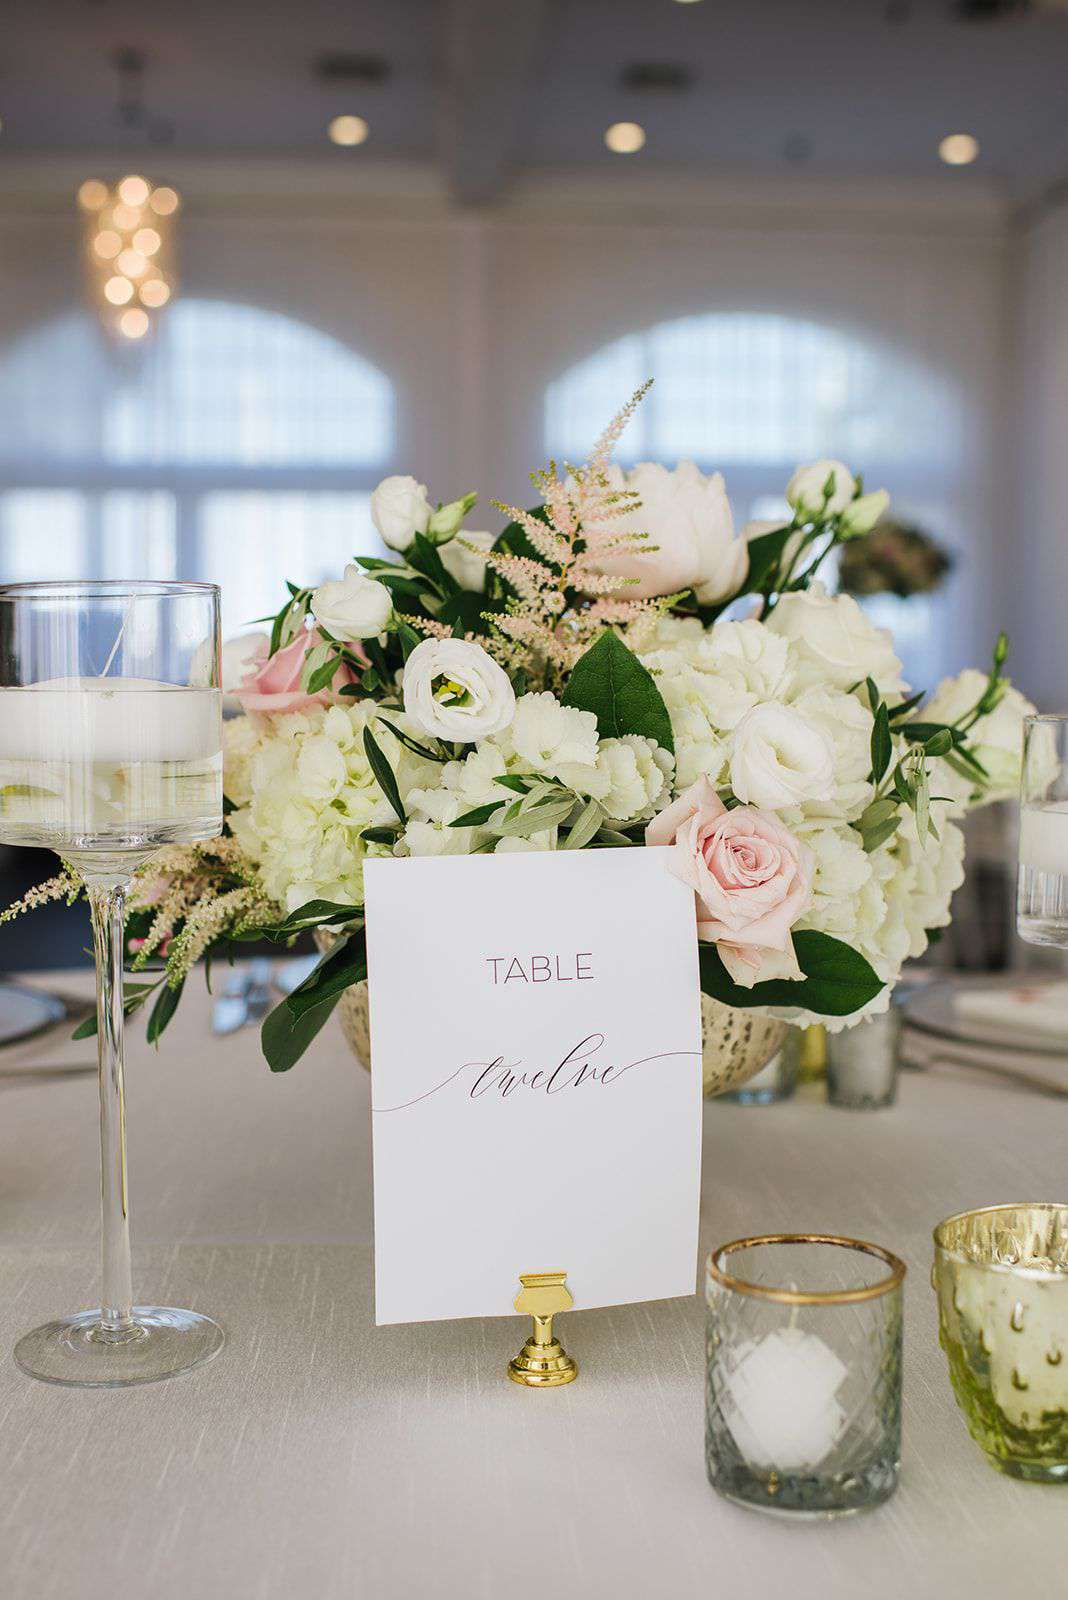 Table number with calligraphy